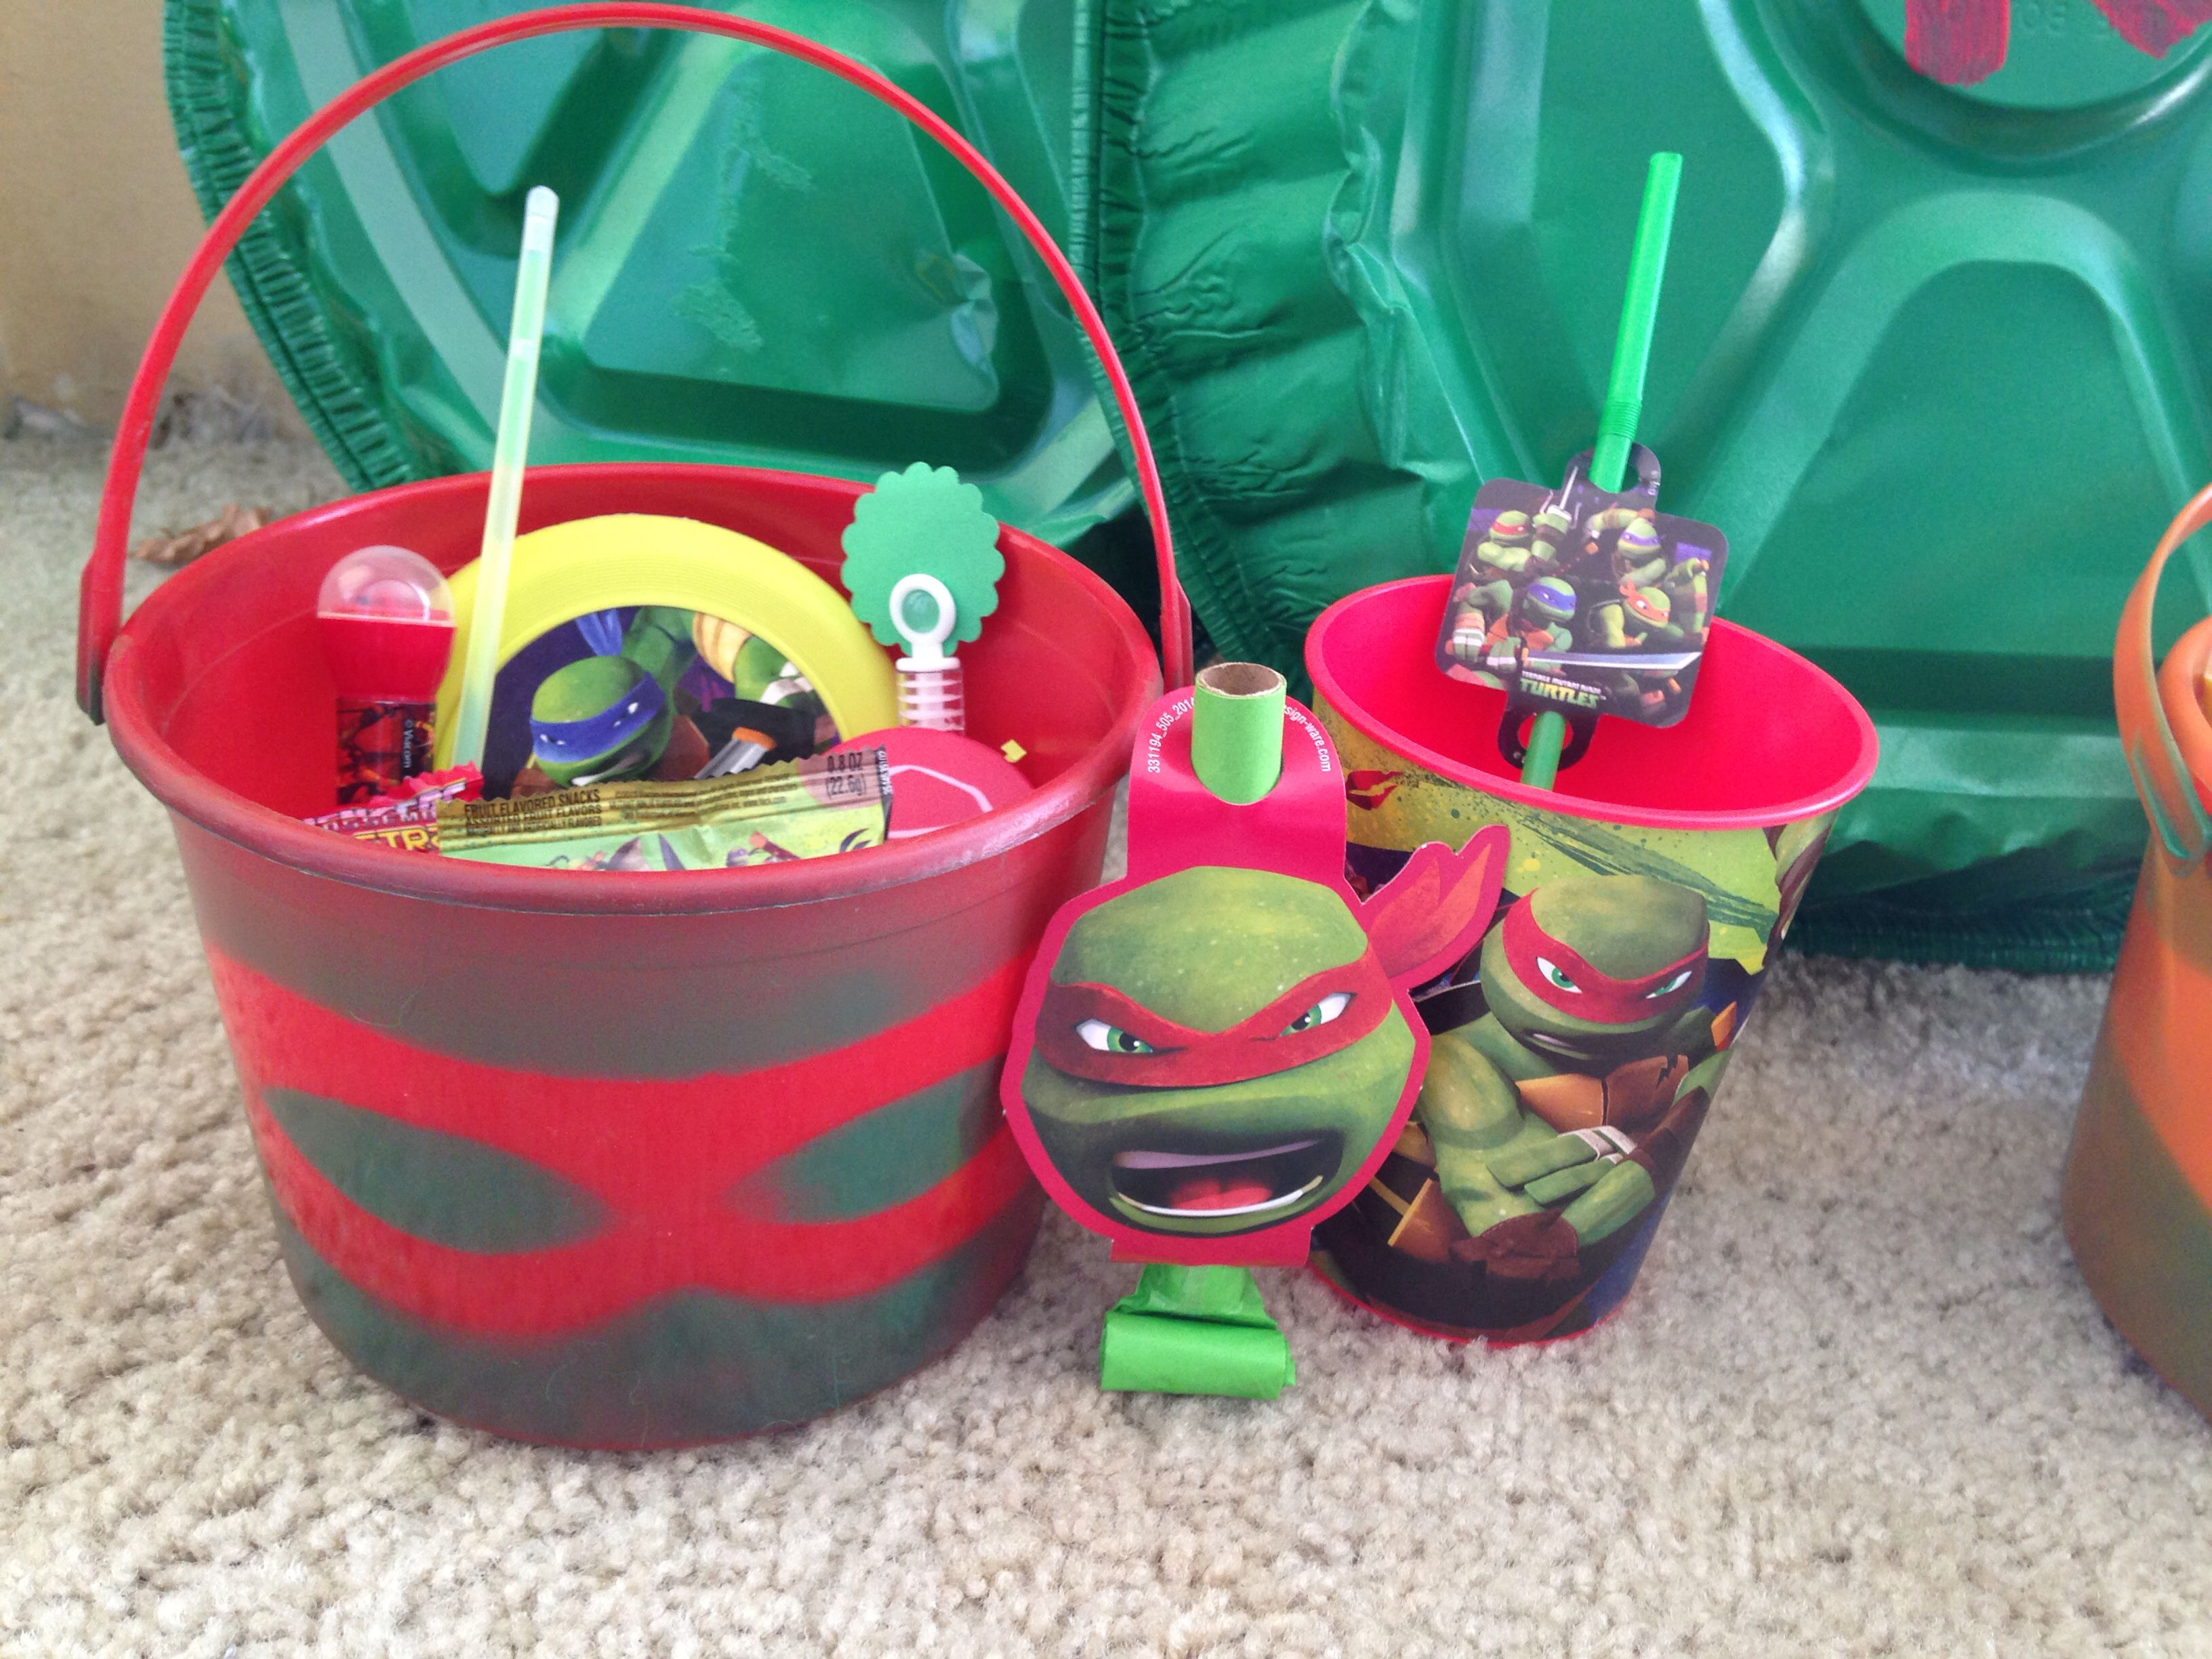 tmnt party favor ideas! take a bucket, put a ninja mask around it